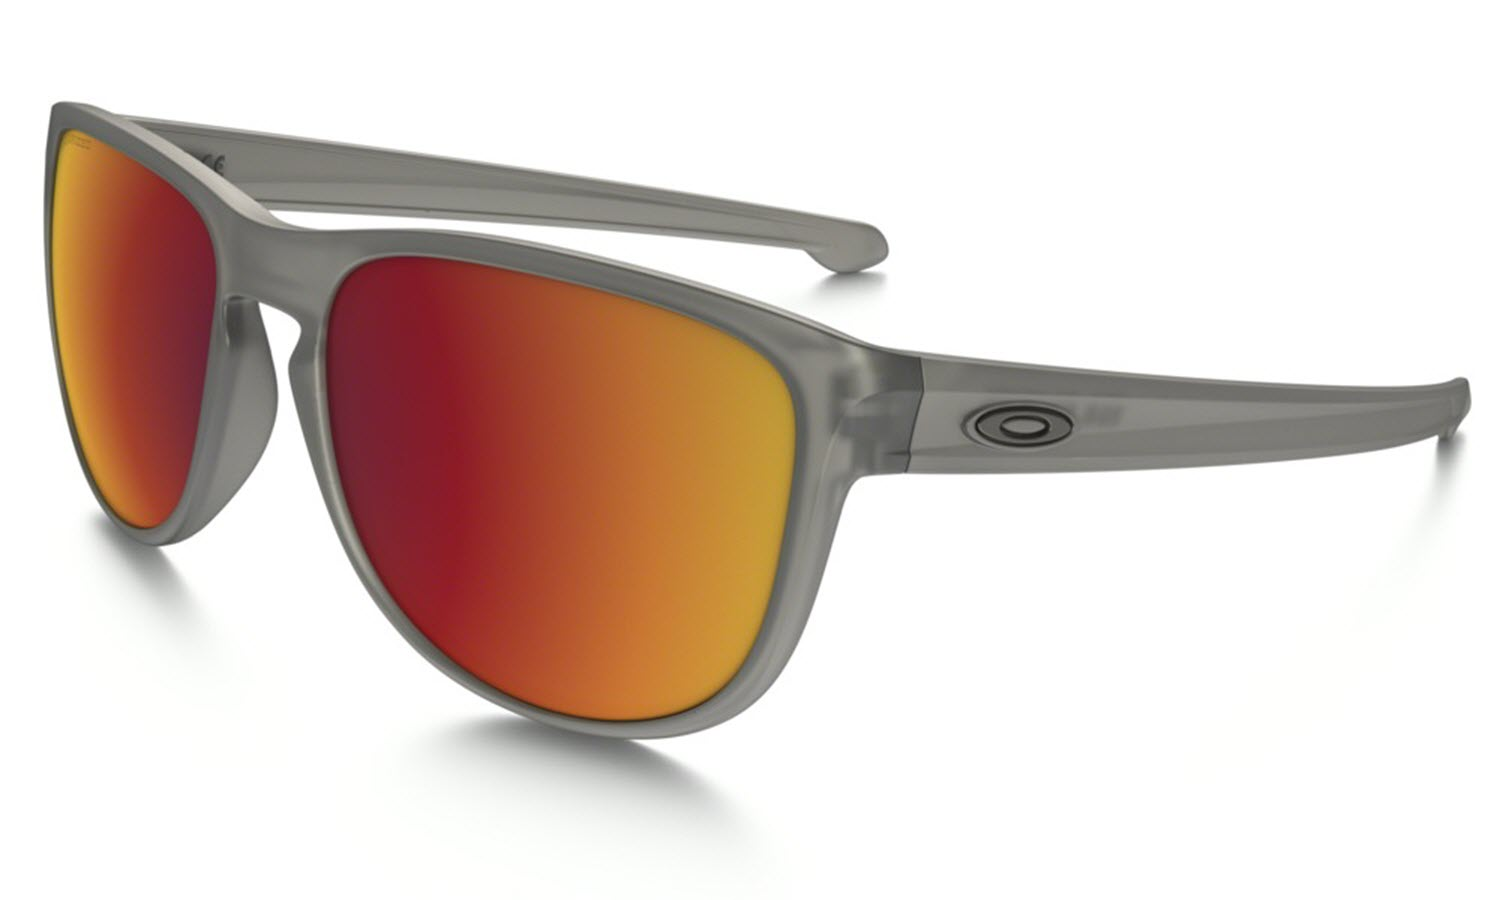 oakley forehand ladies polarized sunglasses  oakley sliver r sunglasses in grey ink with torch iridium polarized lens